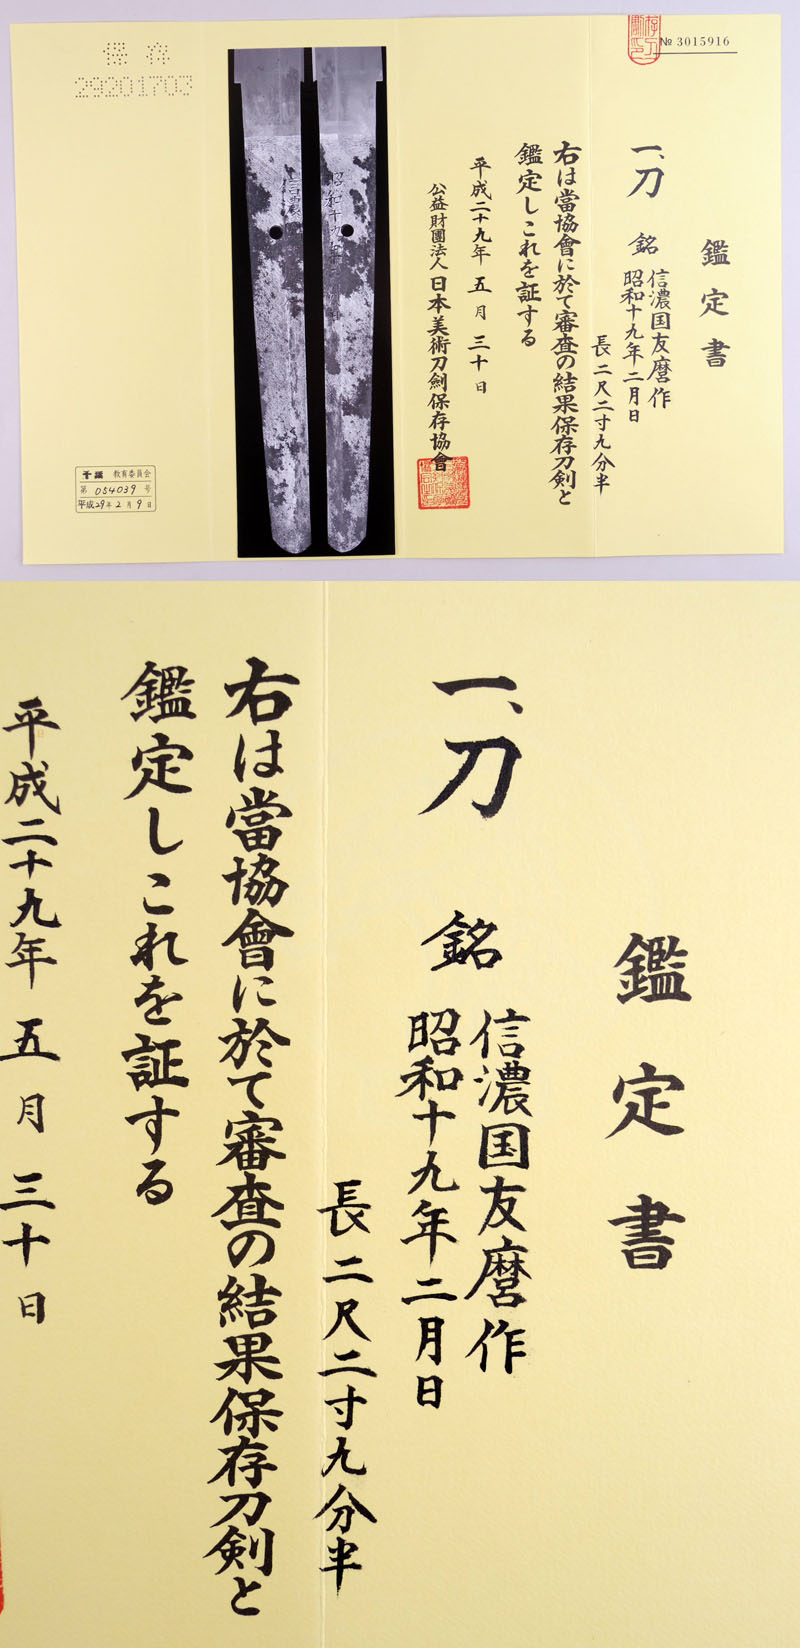 信濃国友麿作 Picture of Certificate